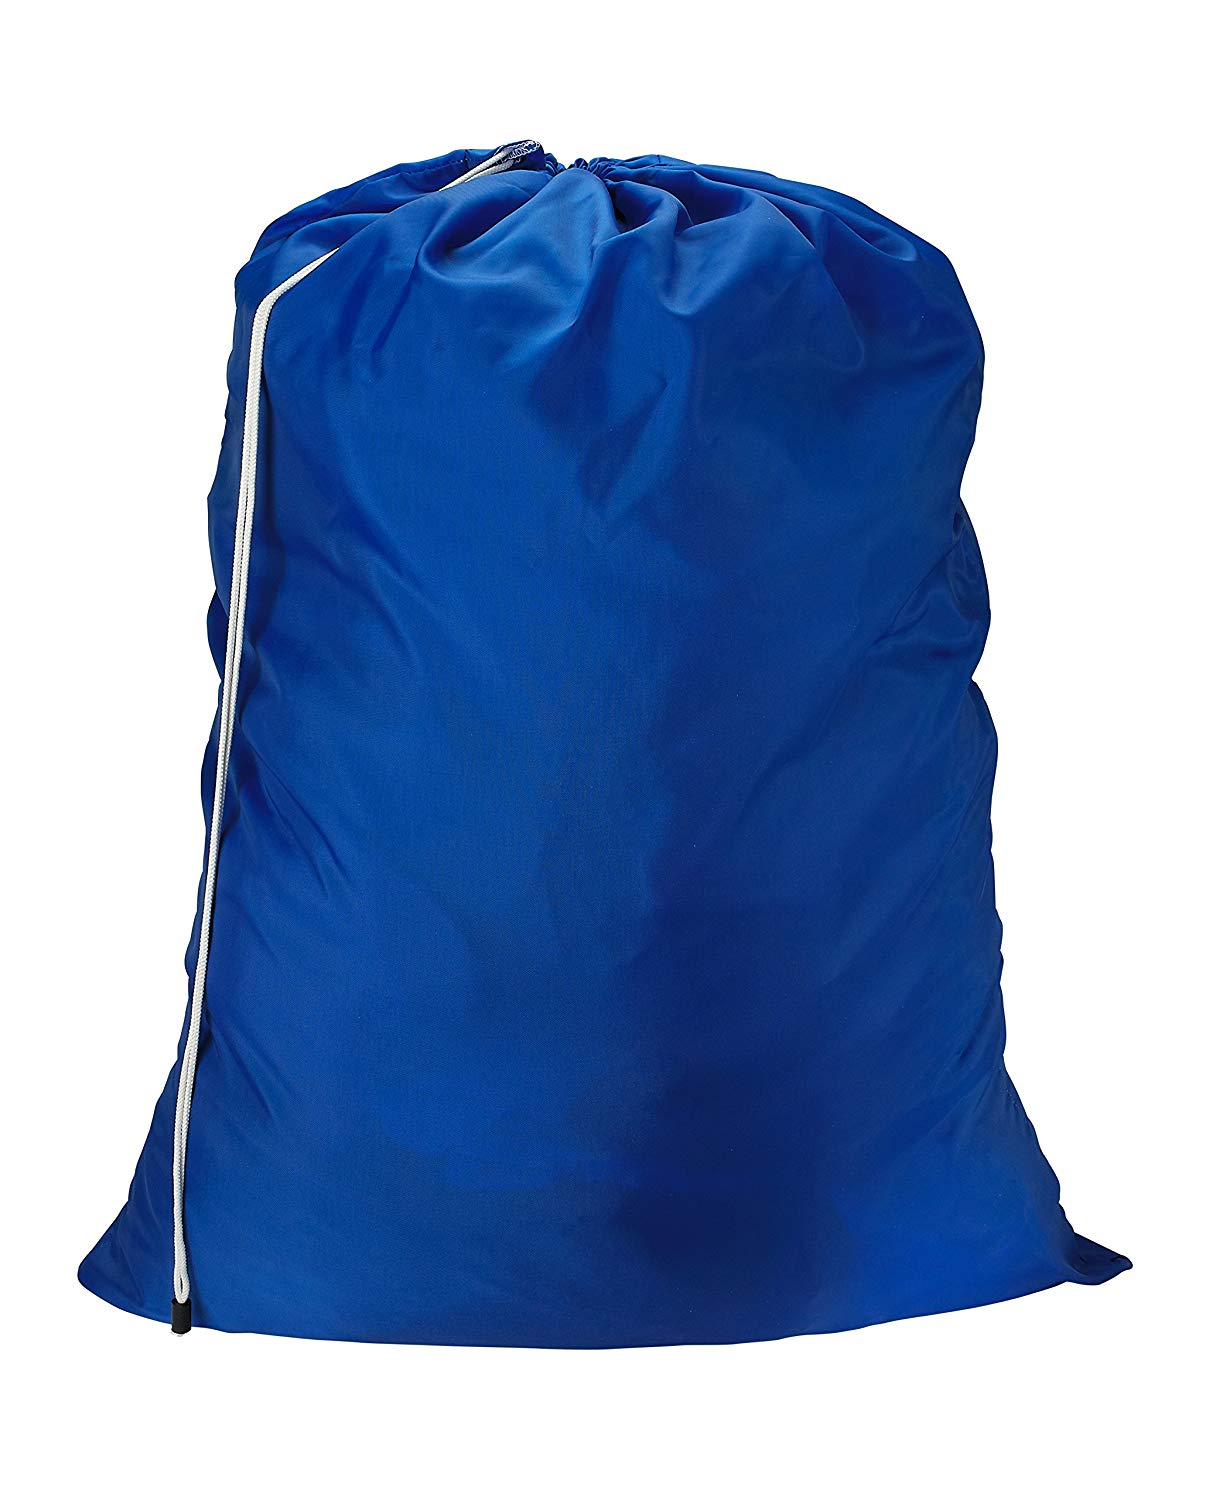 Nylon Laundry Bags - 30x40 - Drawstring - Sliding Lock - Colors